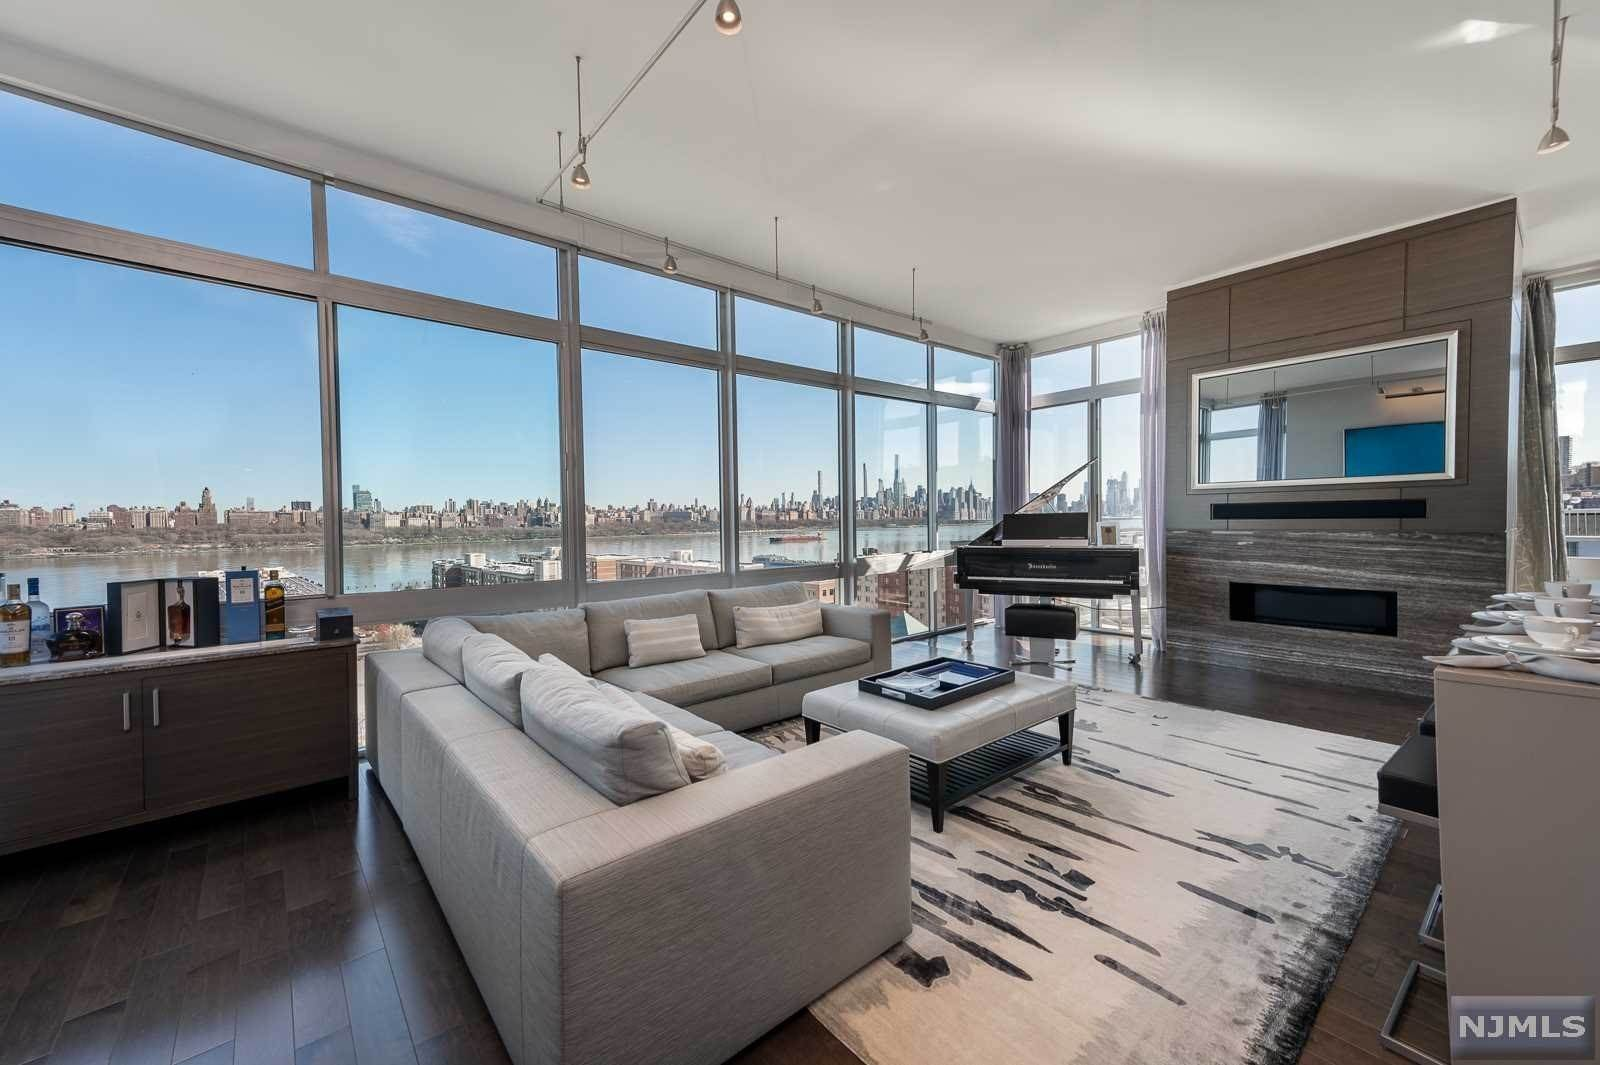 Condominium for Sale at 1828 Hudson Park #PH28 Edgewater, New Jersey, 07020 United States